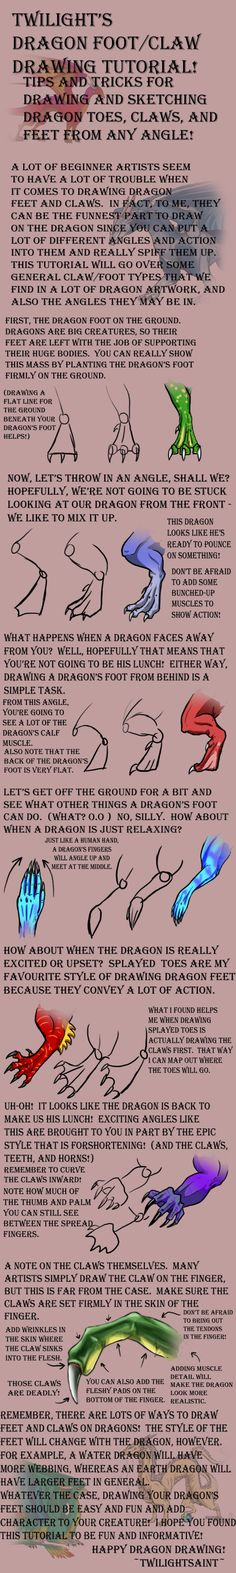 Tutorial - DRAGON FEET by TwilightSaint.deviantart.com on @deviantART